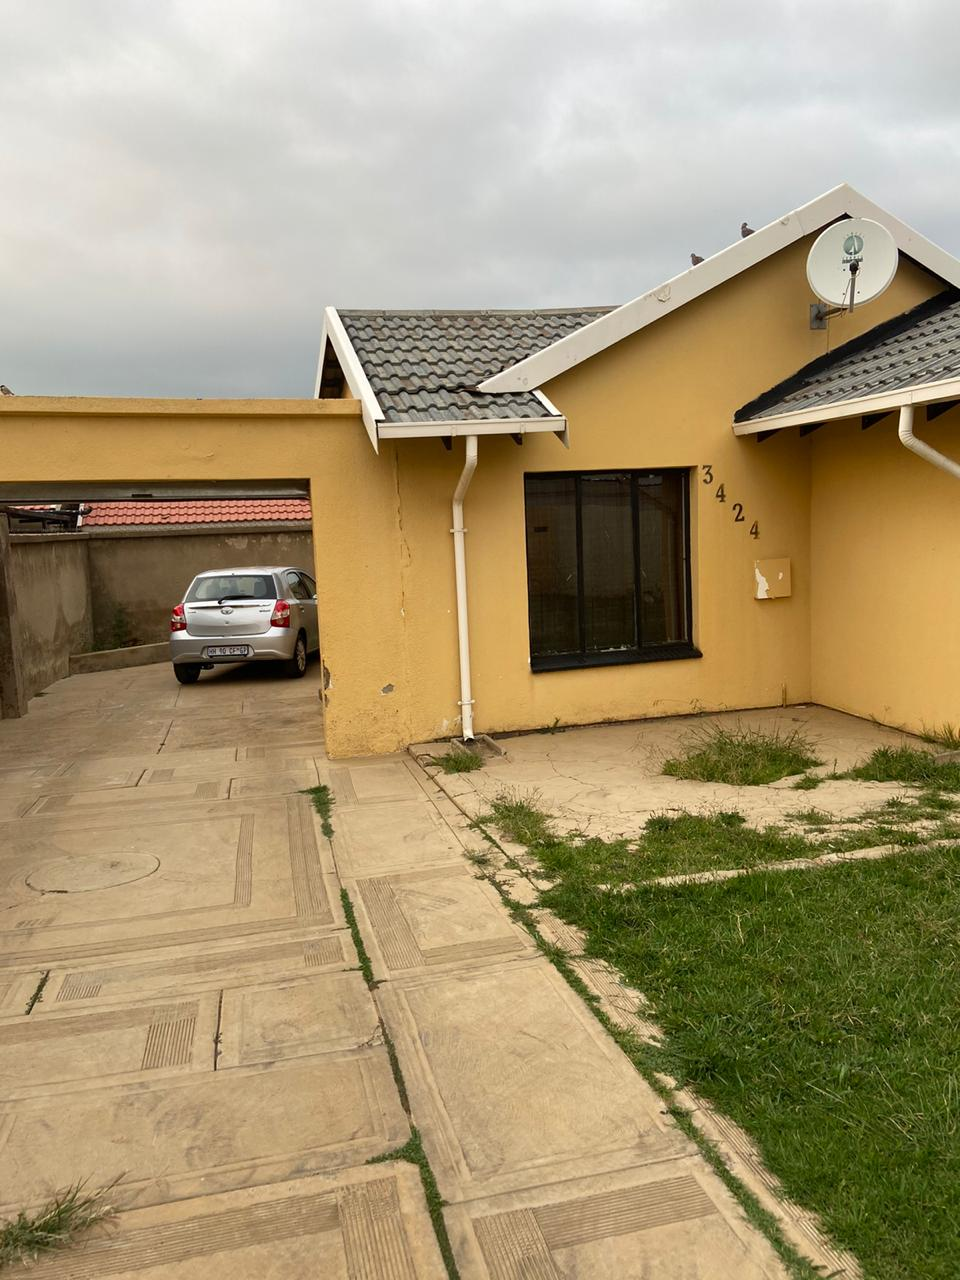 3 Bedroom House For Sale in Naturena